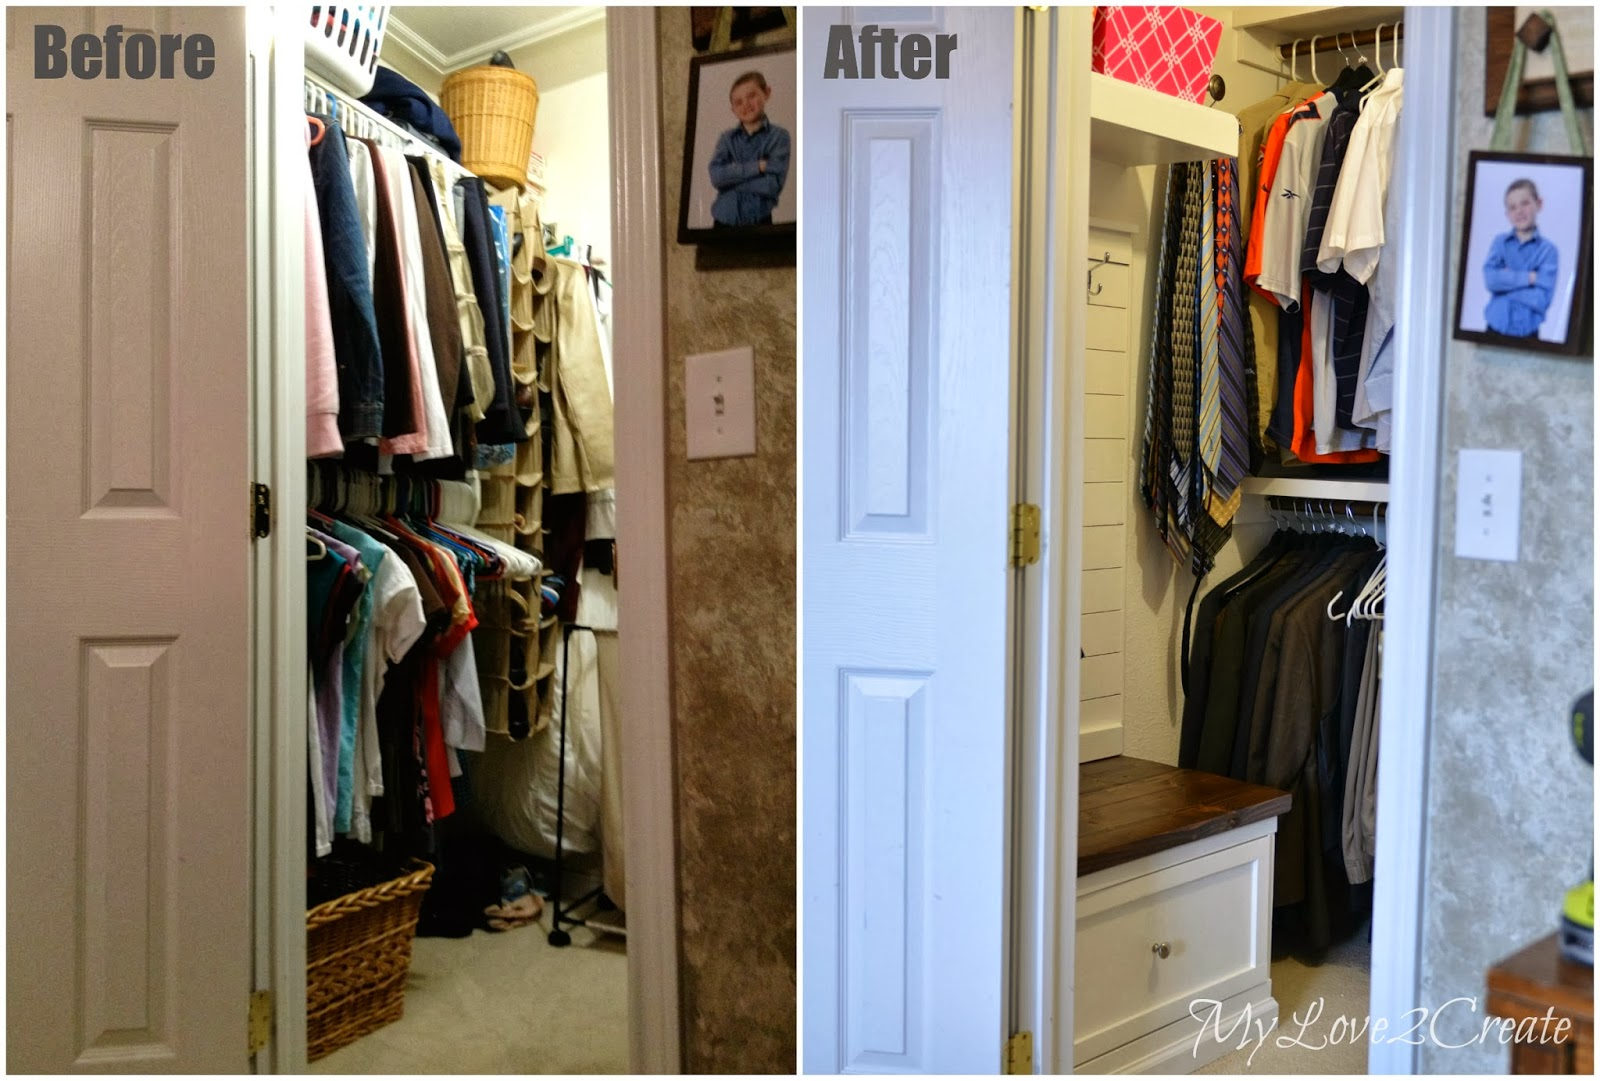 Marvelous MyLove2Create, Master Closet Makeover